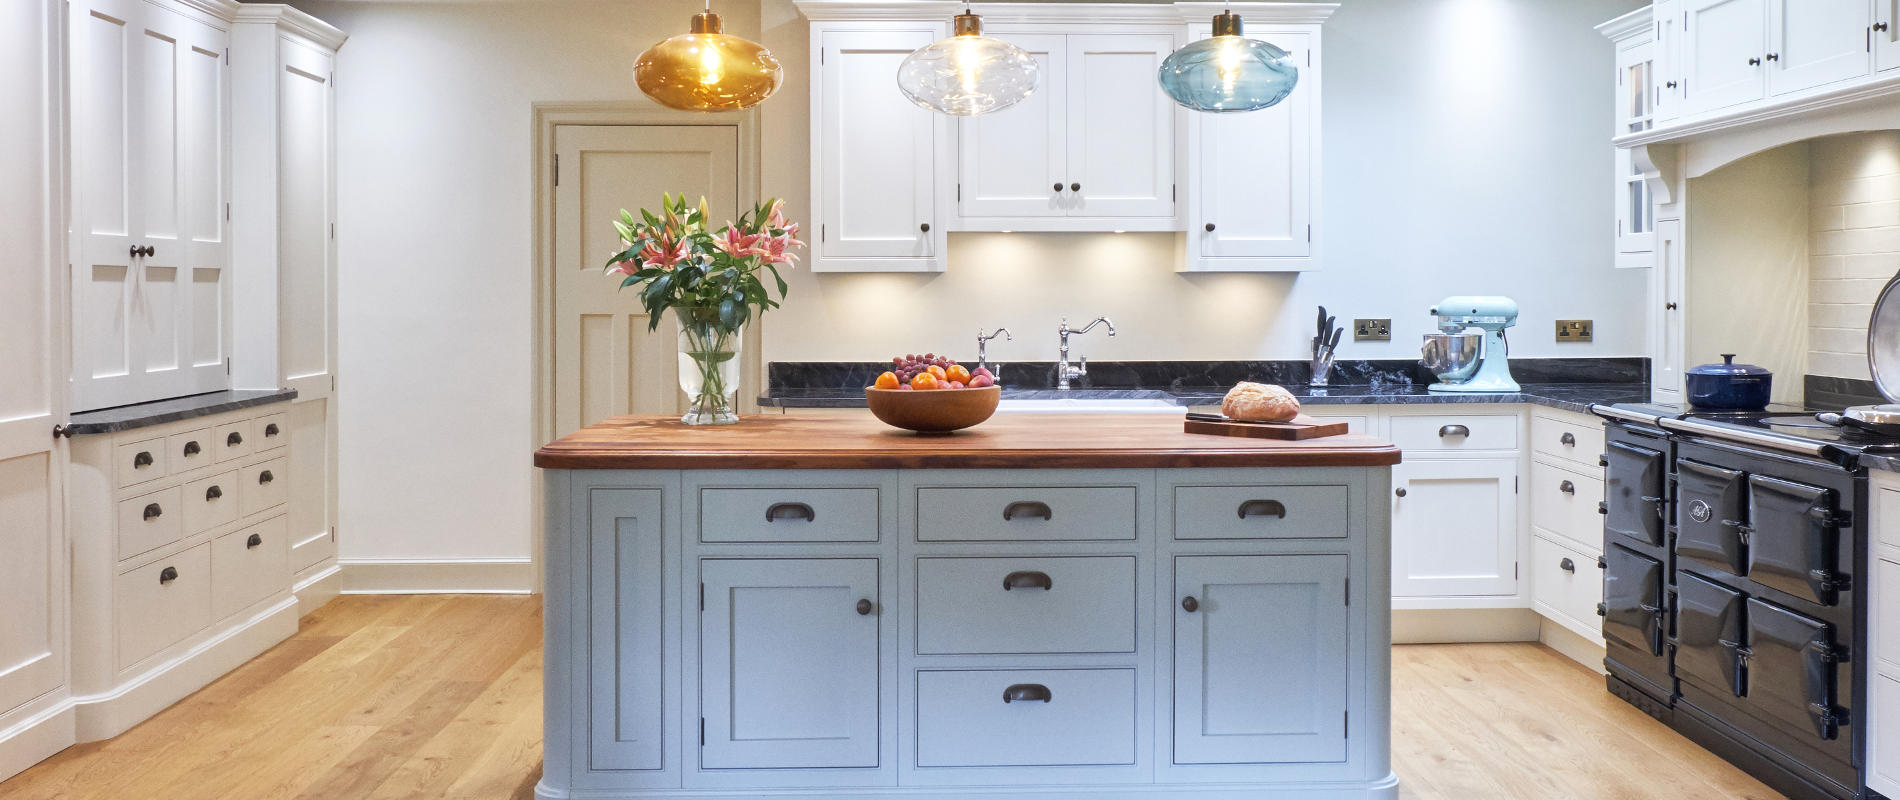 bespoke kitchen furniture studio carpentry handmade bespoke kitchens and fitted 10689